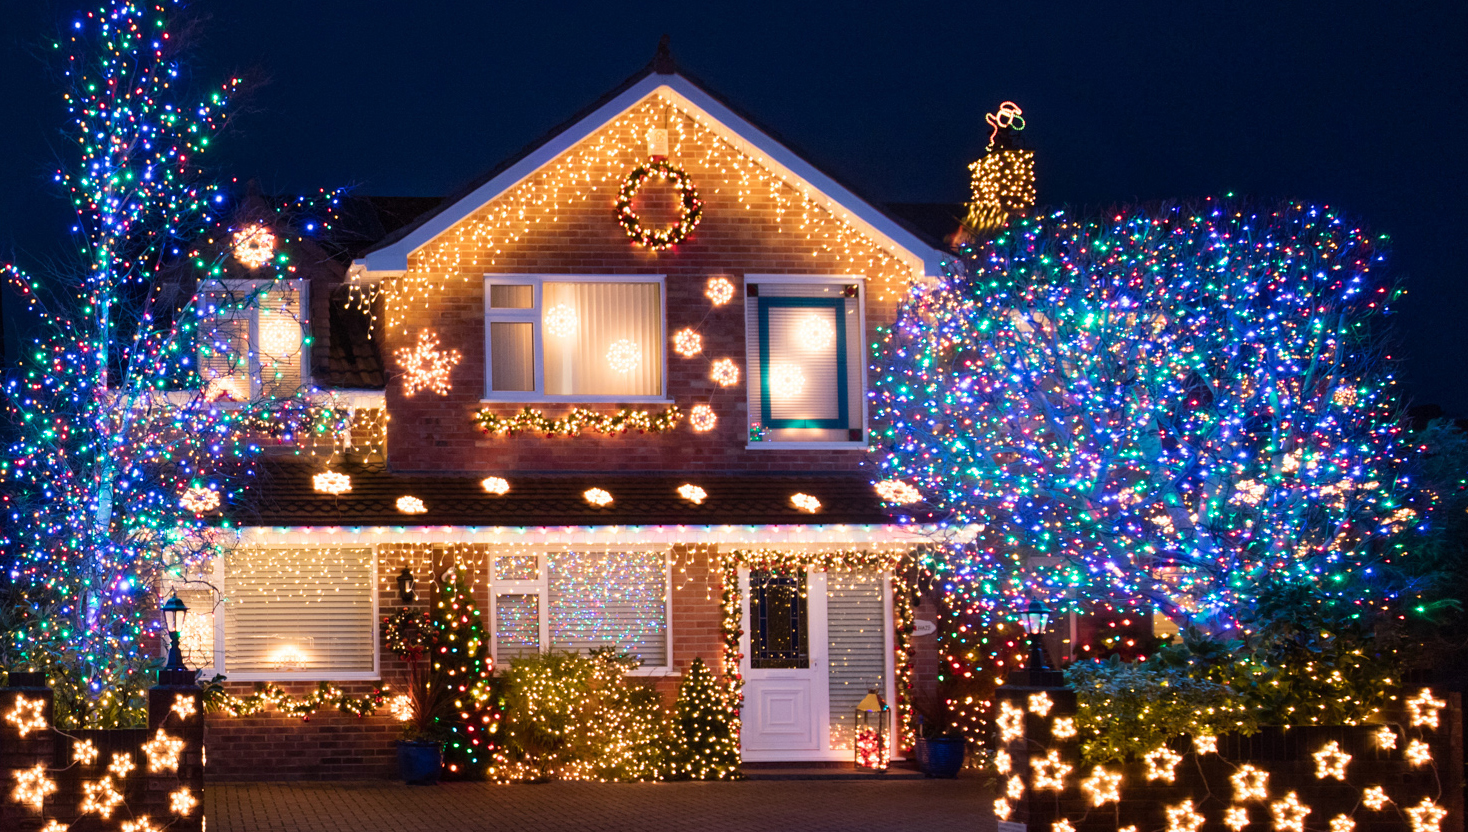 20 outdoor christmas light decoration ideas outside christmas 20 outdoor christmas light decoration ideas outside christmas lights display pictures aloadofball Images